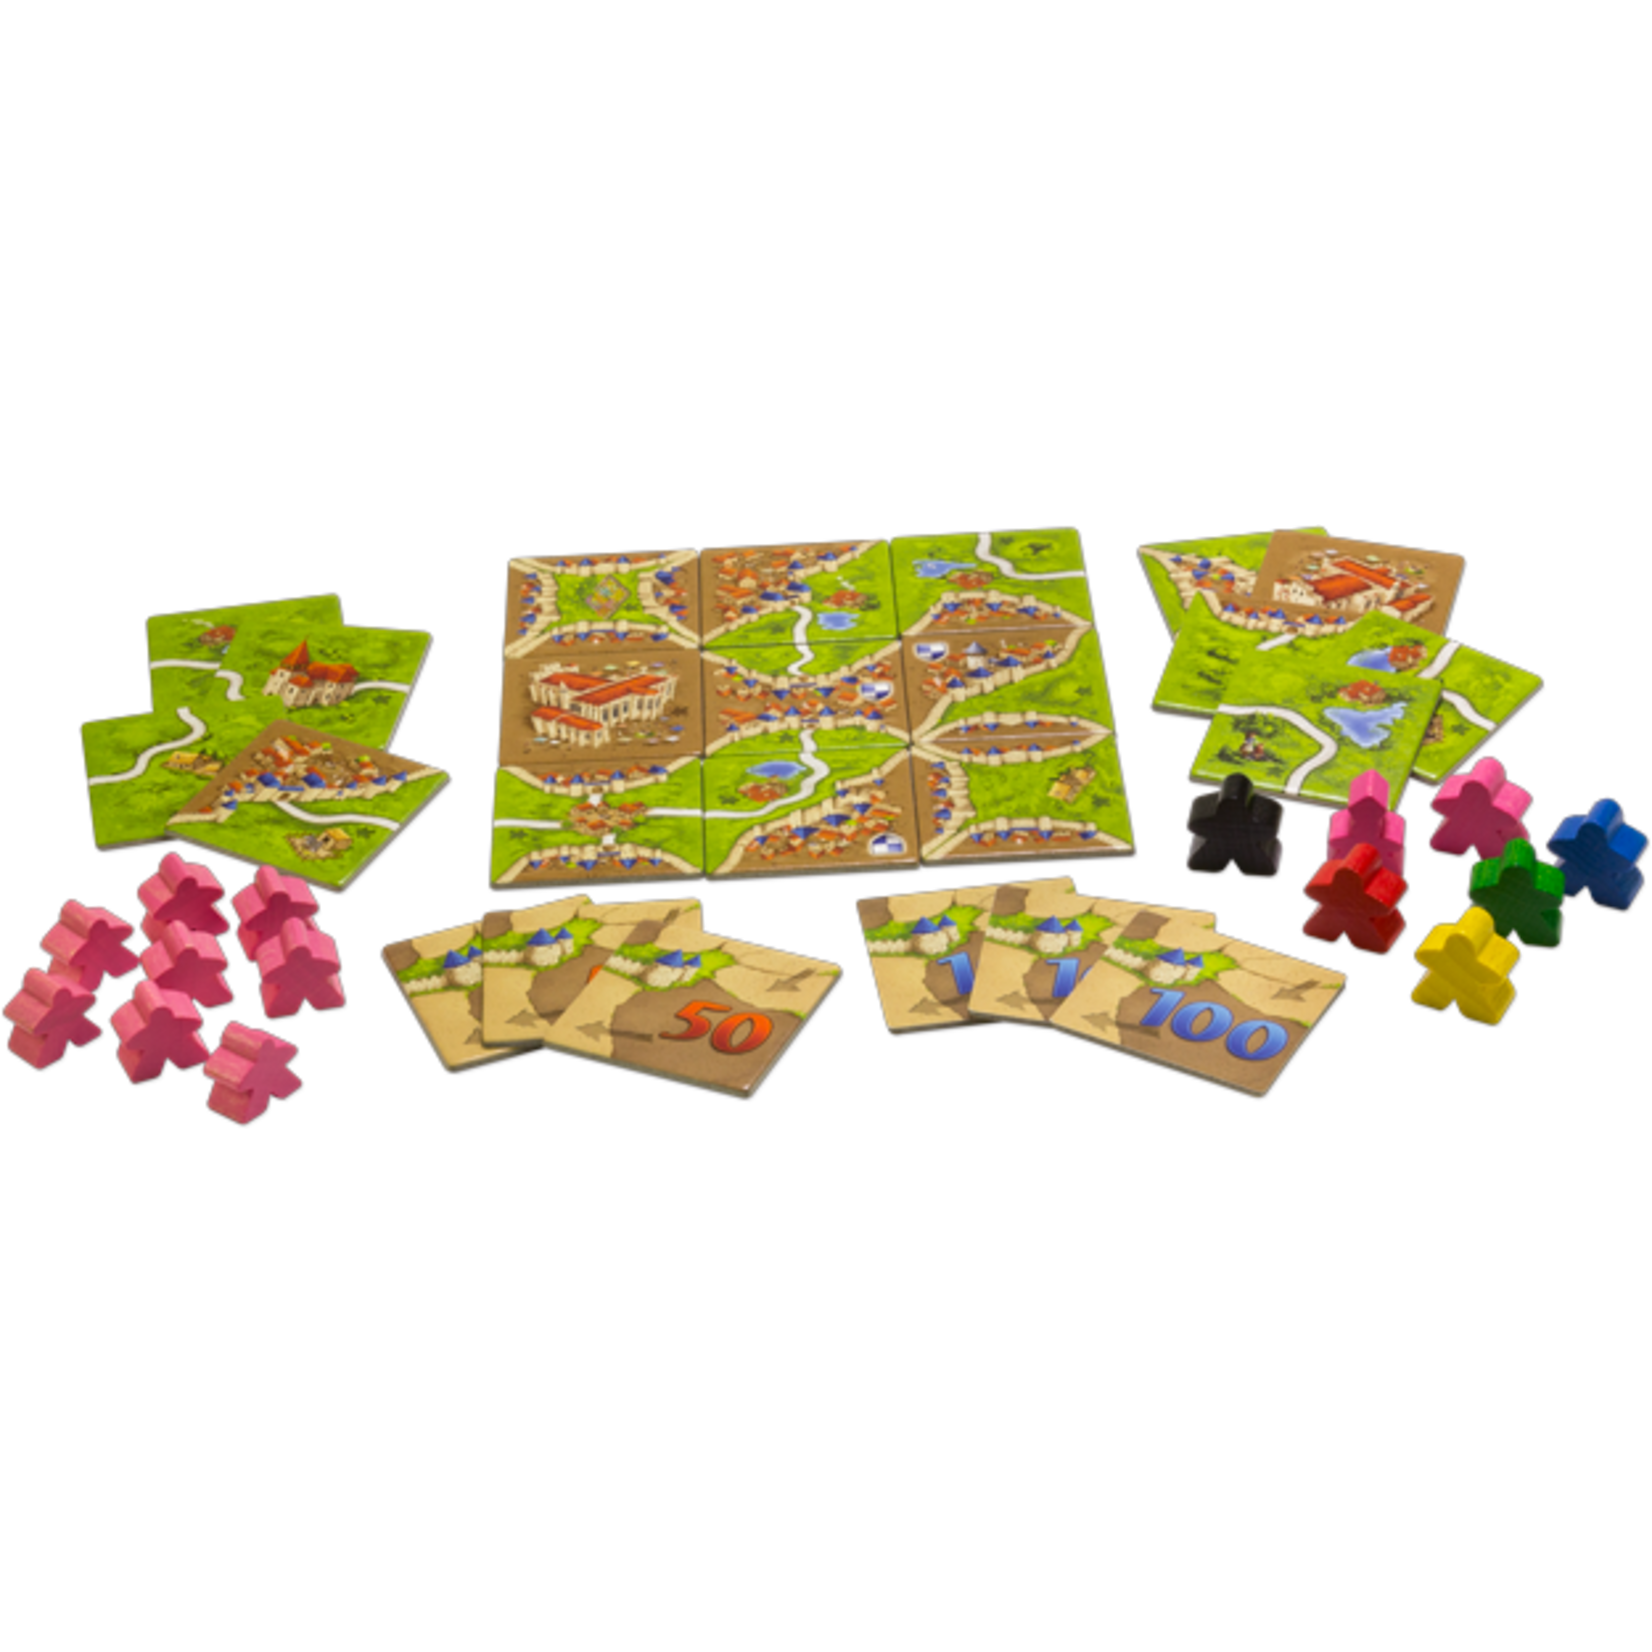 Z-Man Games Carcassonne Exp 01: Inns & Cathedrals